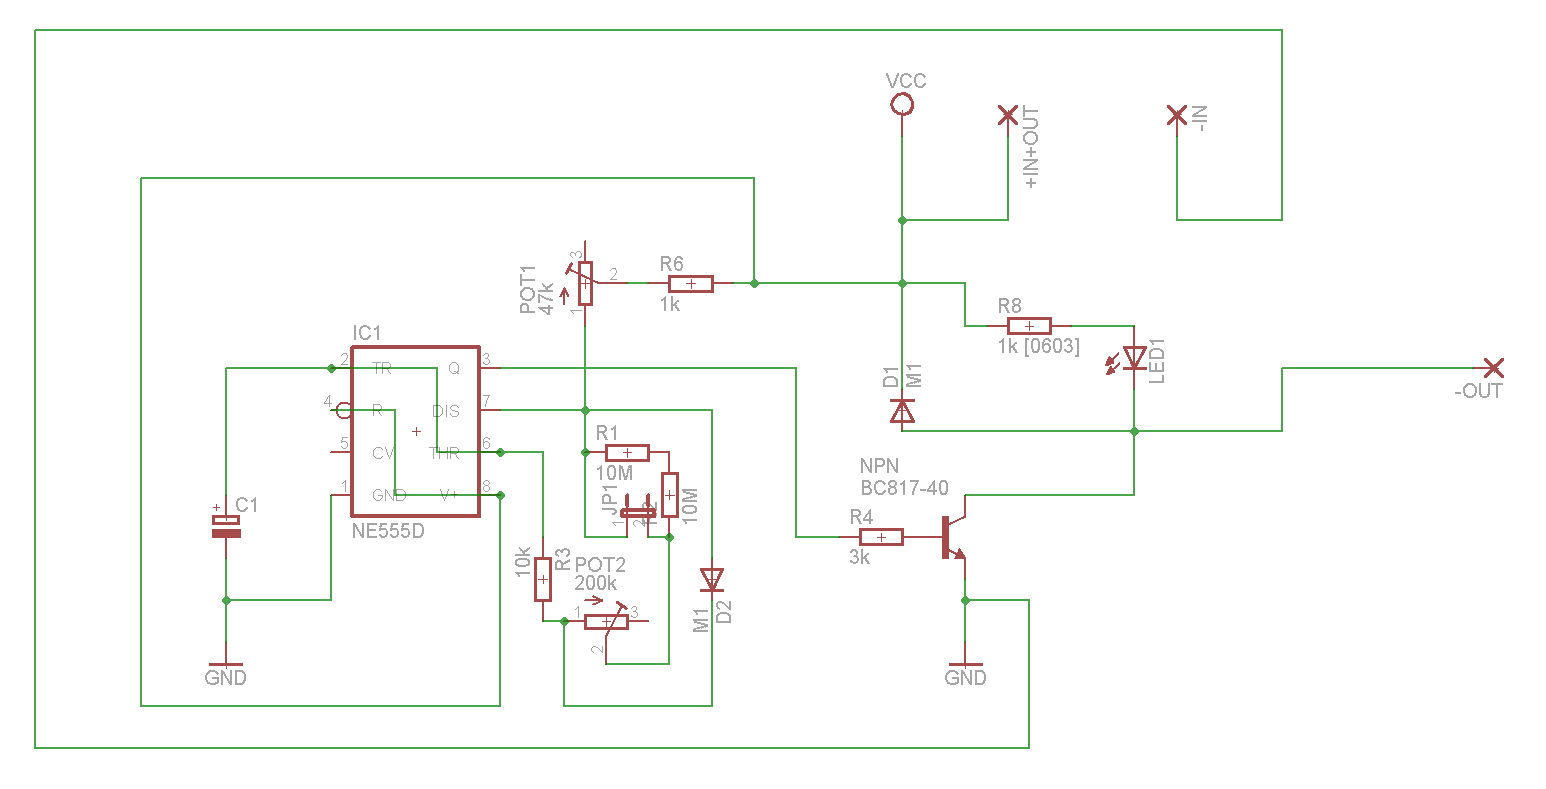 diagram_fire_control_unit_aeg_to_hpa_drop_in_final_version.png